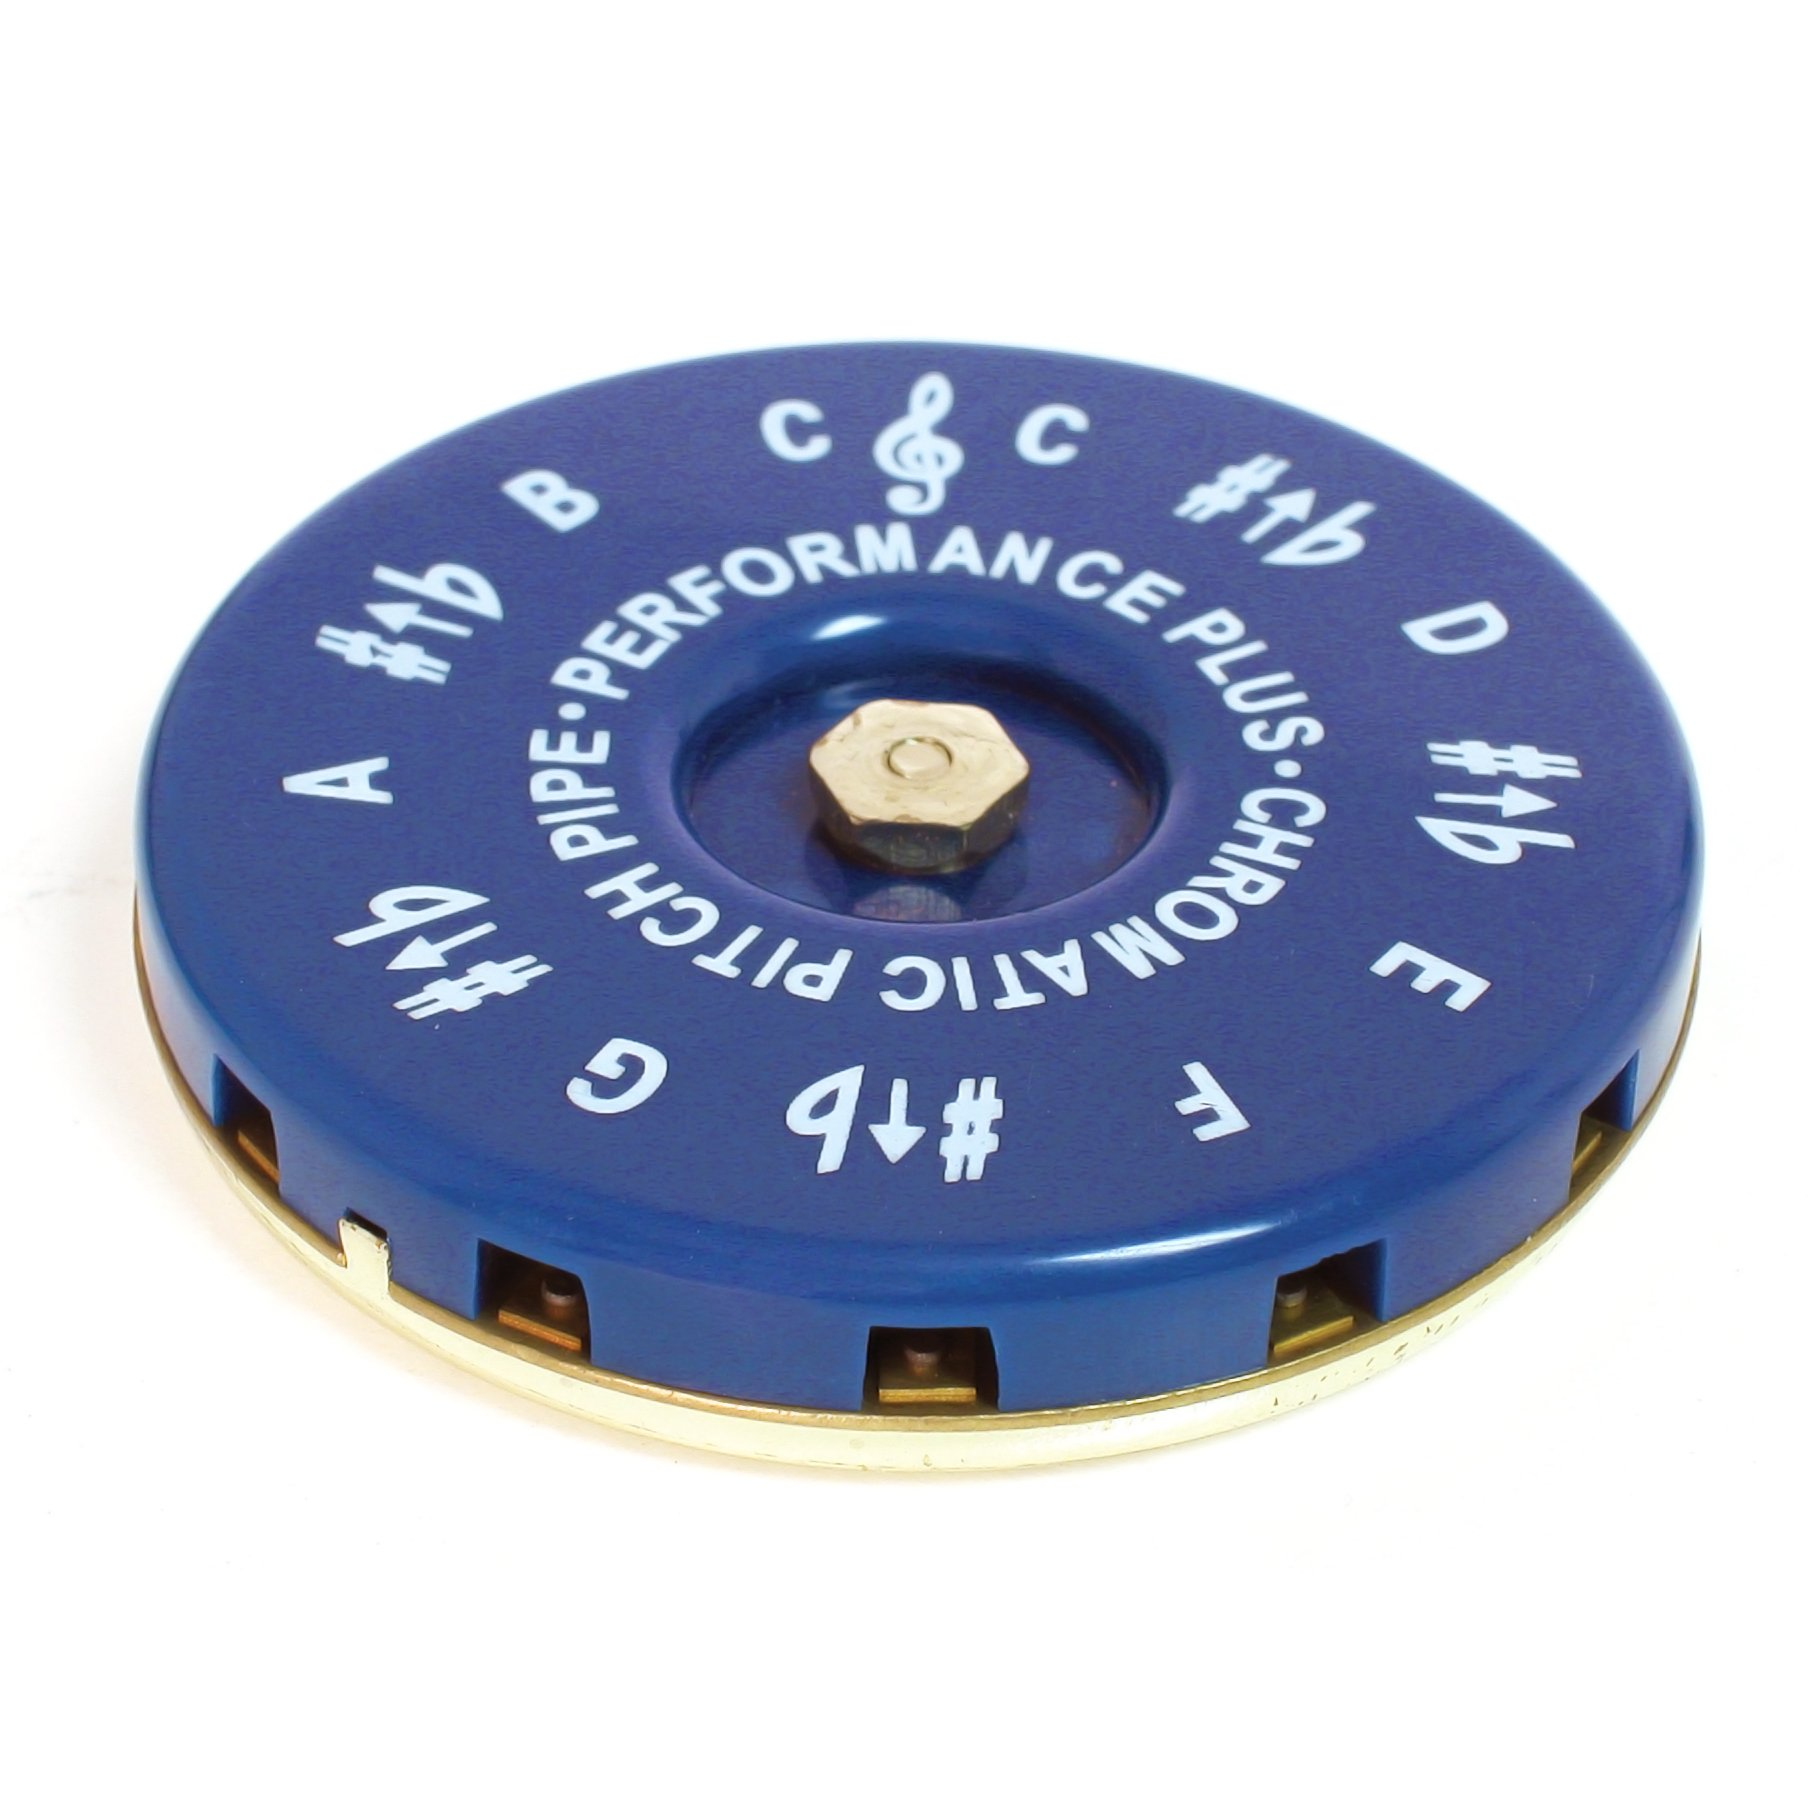 Performance Plus CP-C Vocal Chromatic Pitch Pipe Key of C to C with Carrying Bag by Performance Plus